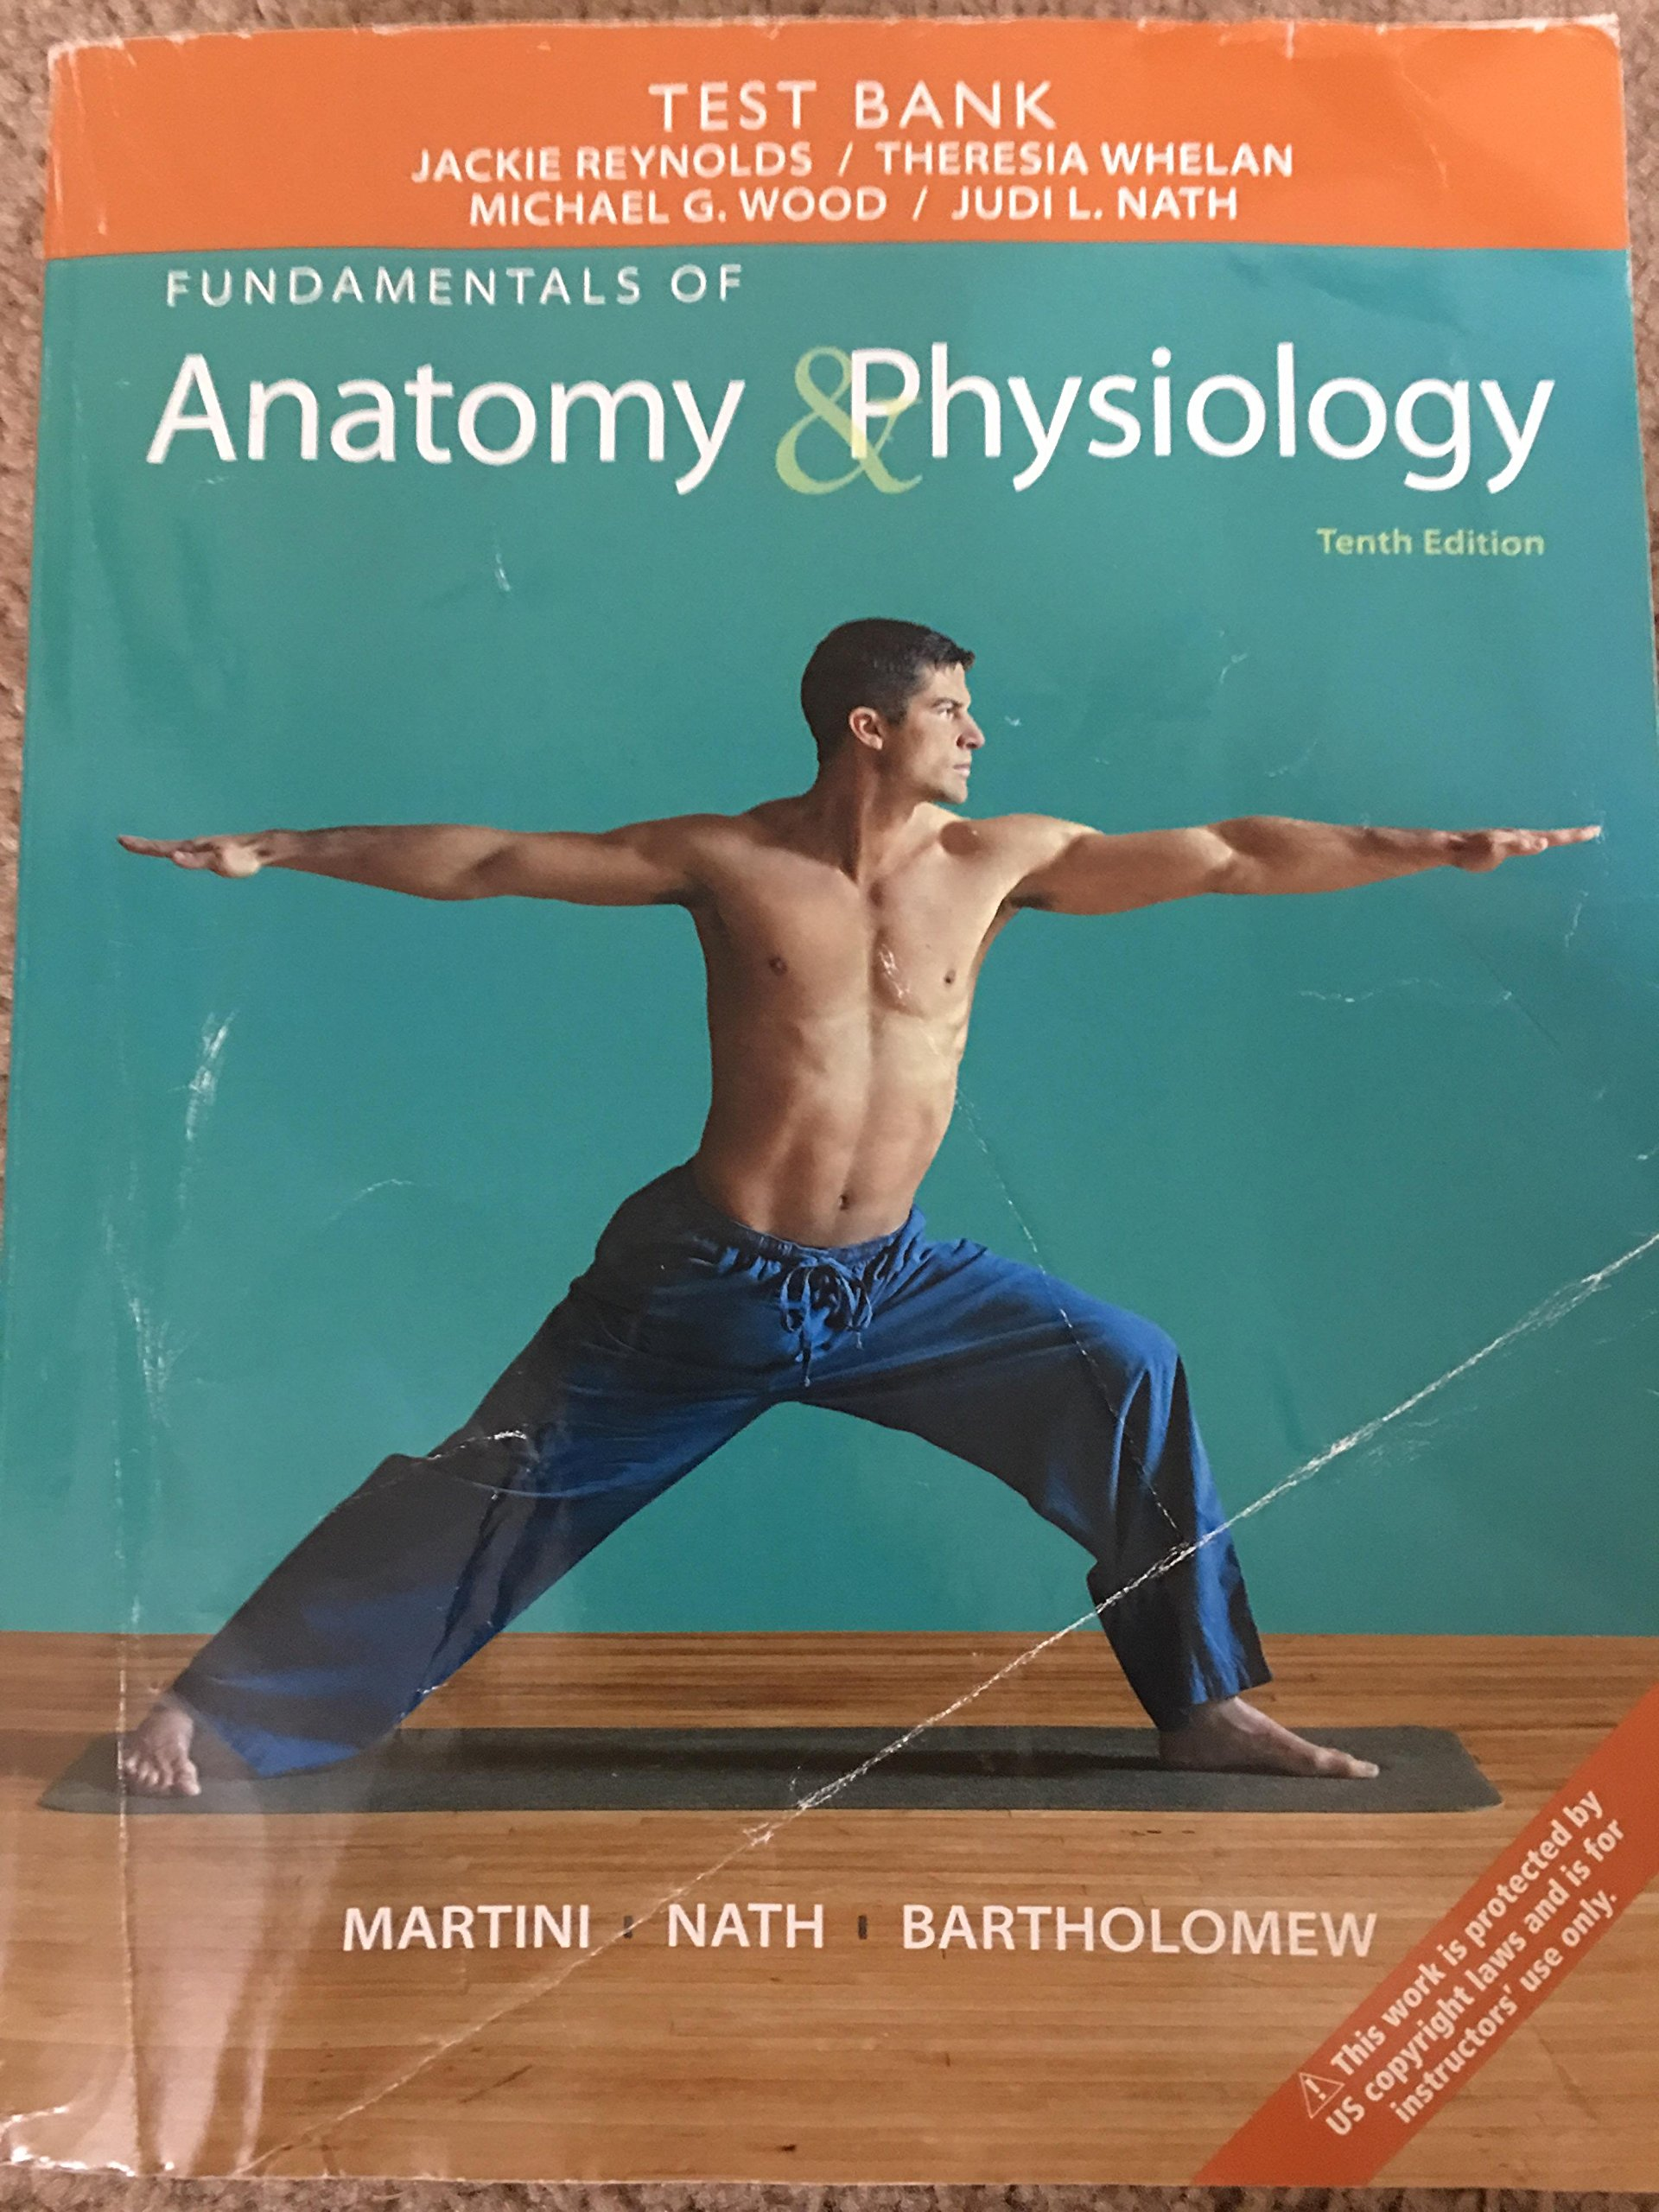 Test Bank- Fundamentals Anatomy & Physiology 10th Edition: Martini ...